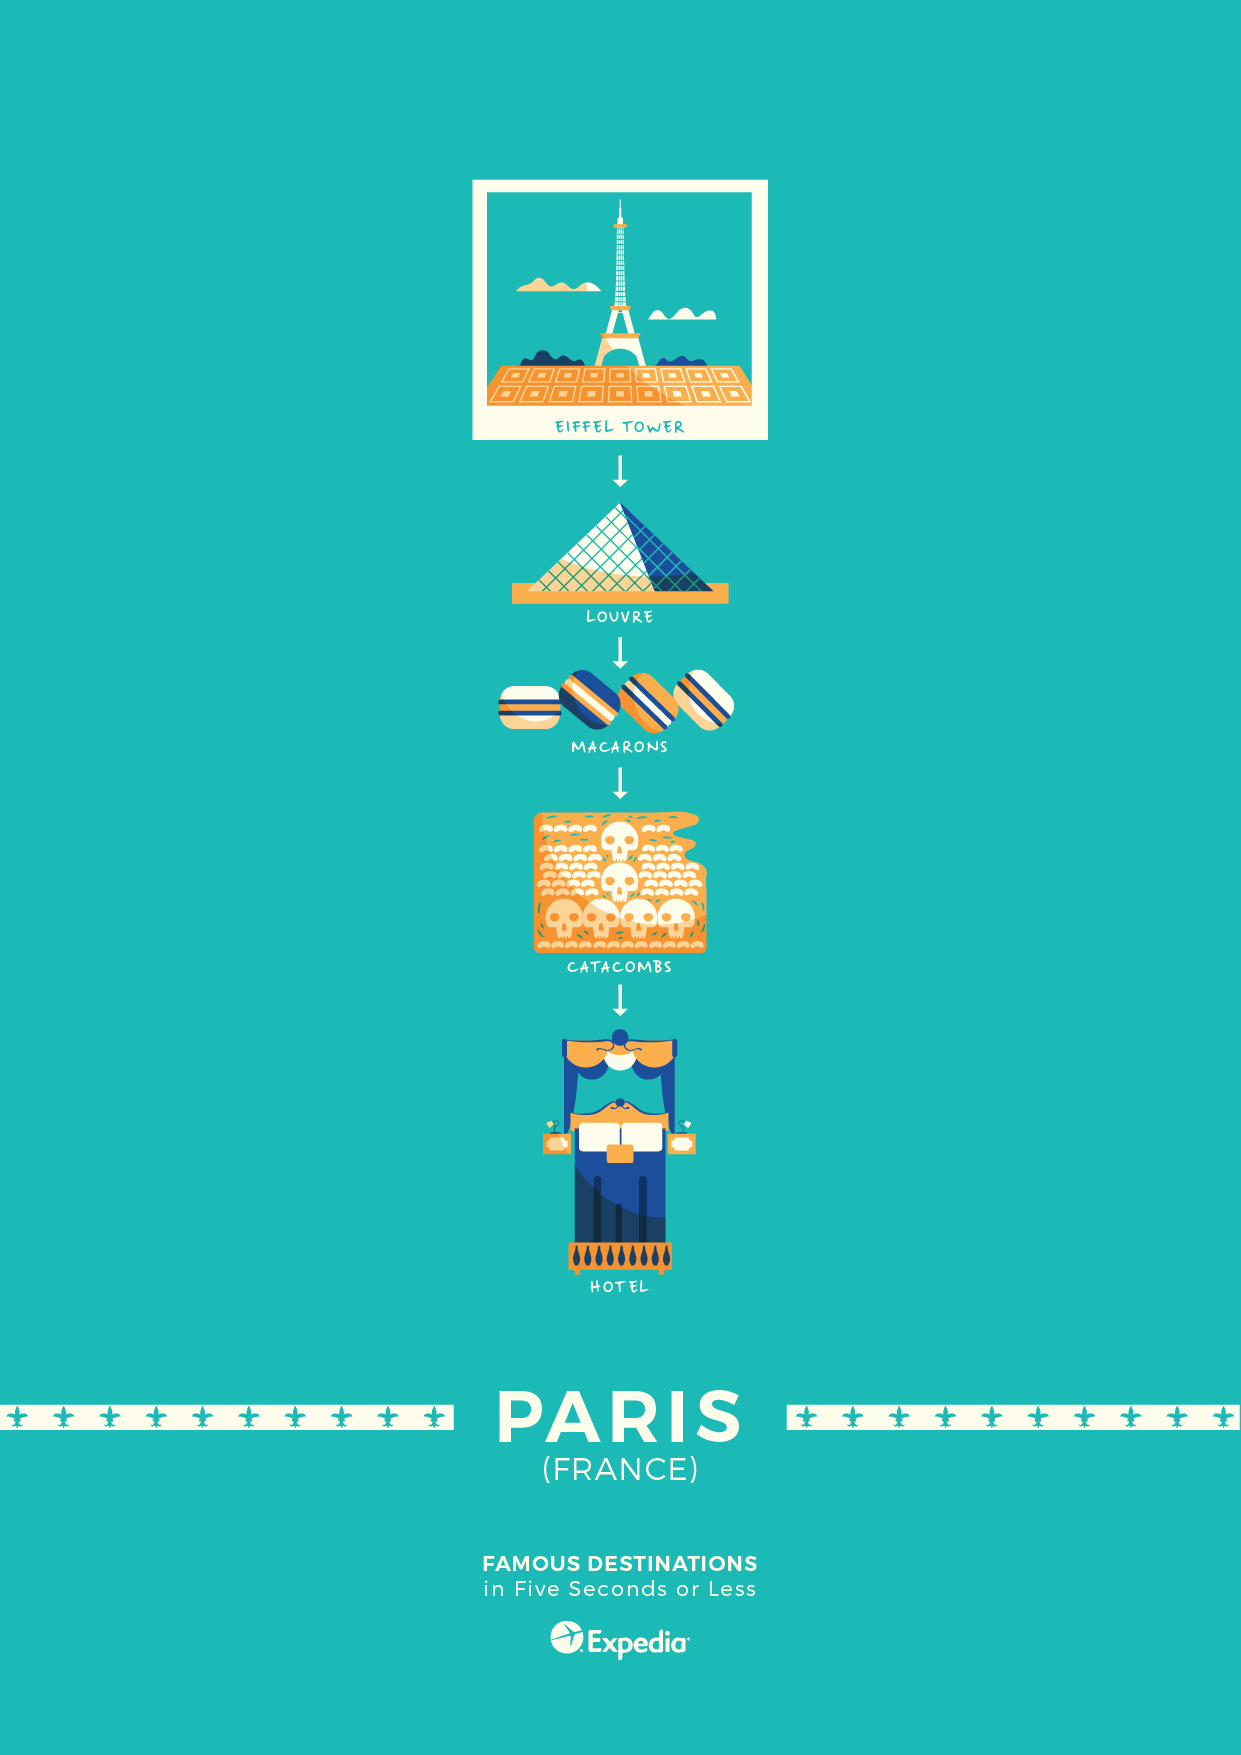 Paris travel poster elevator pitch